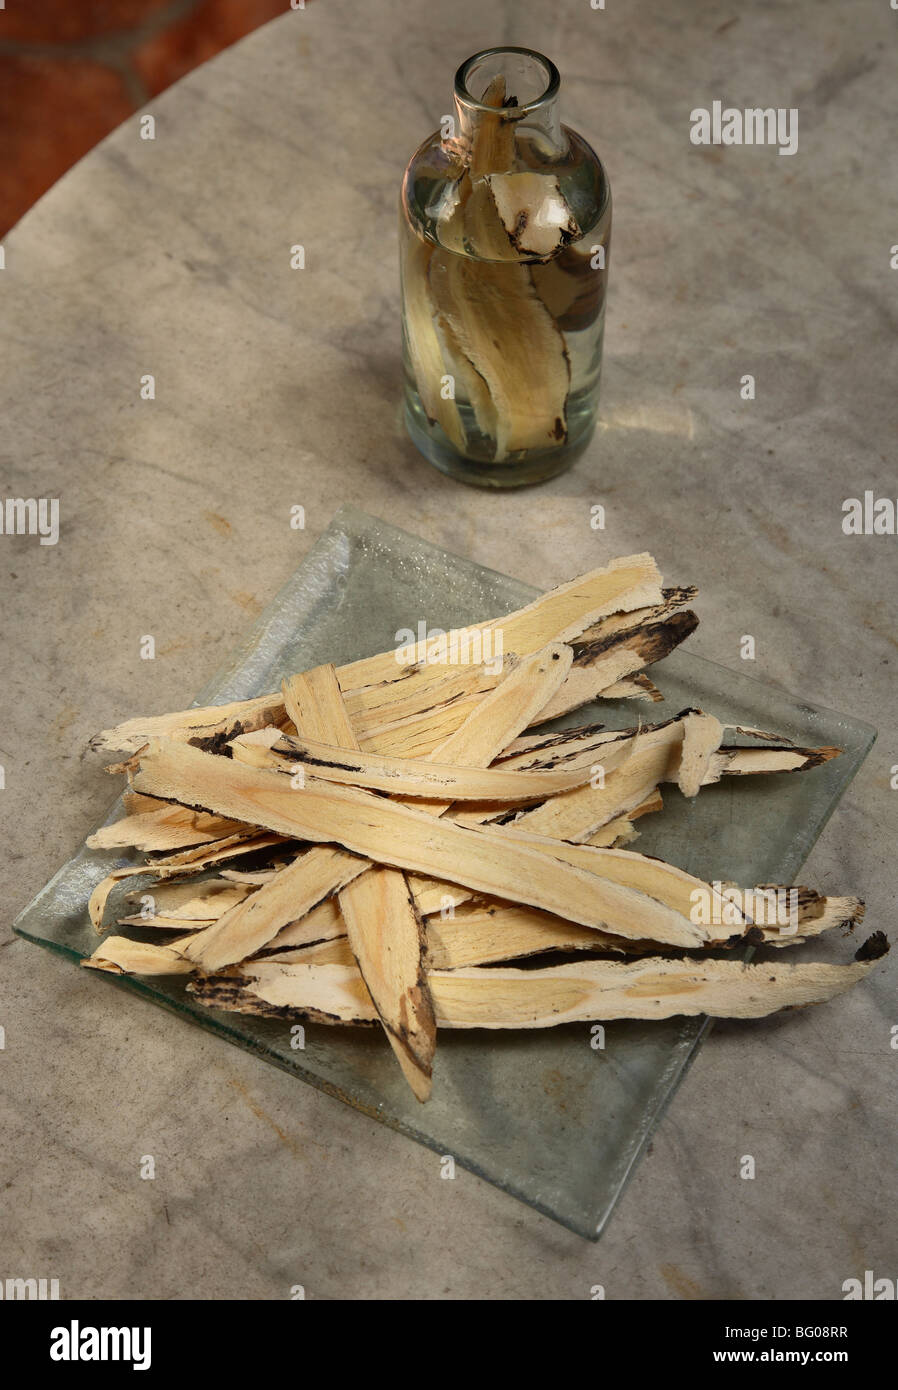 Astragalus, used to protect and support the immune system - Stock Image